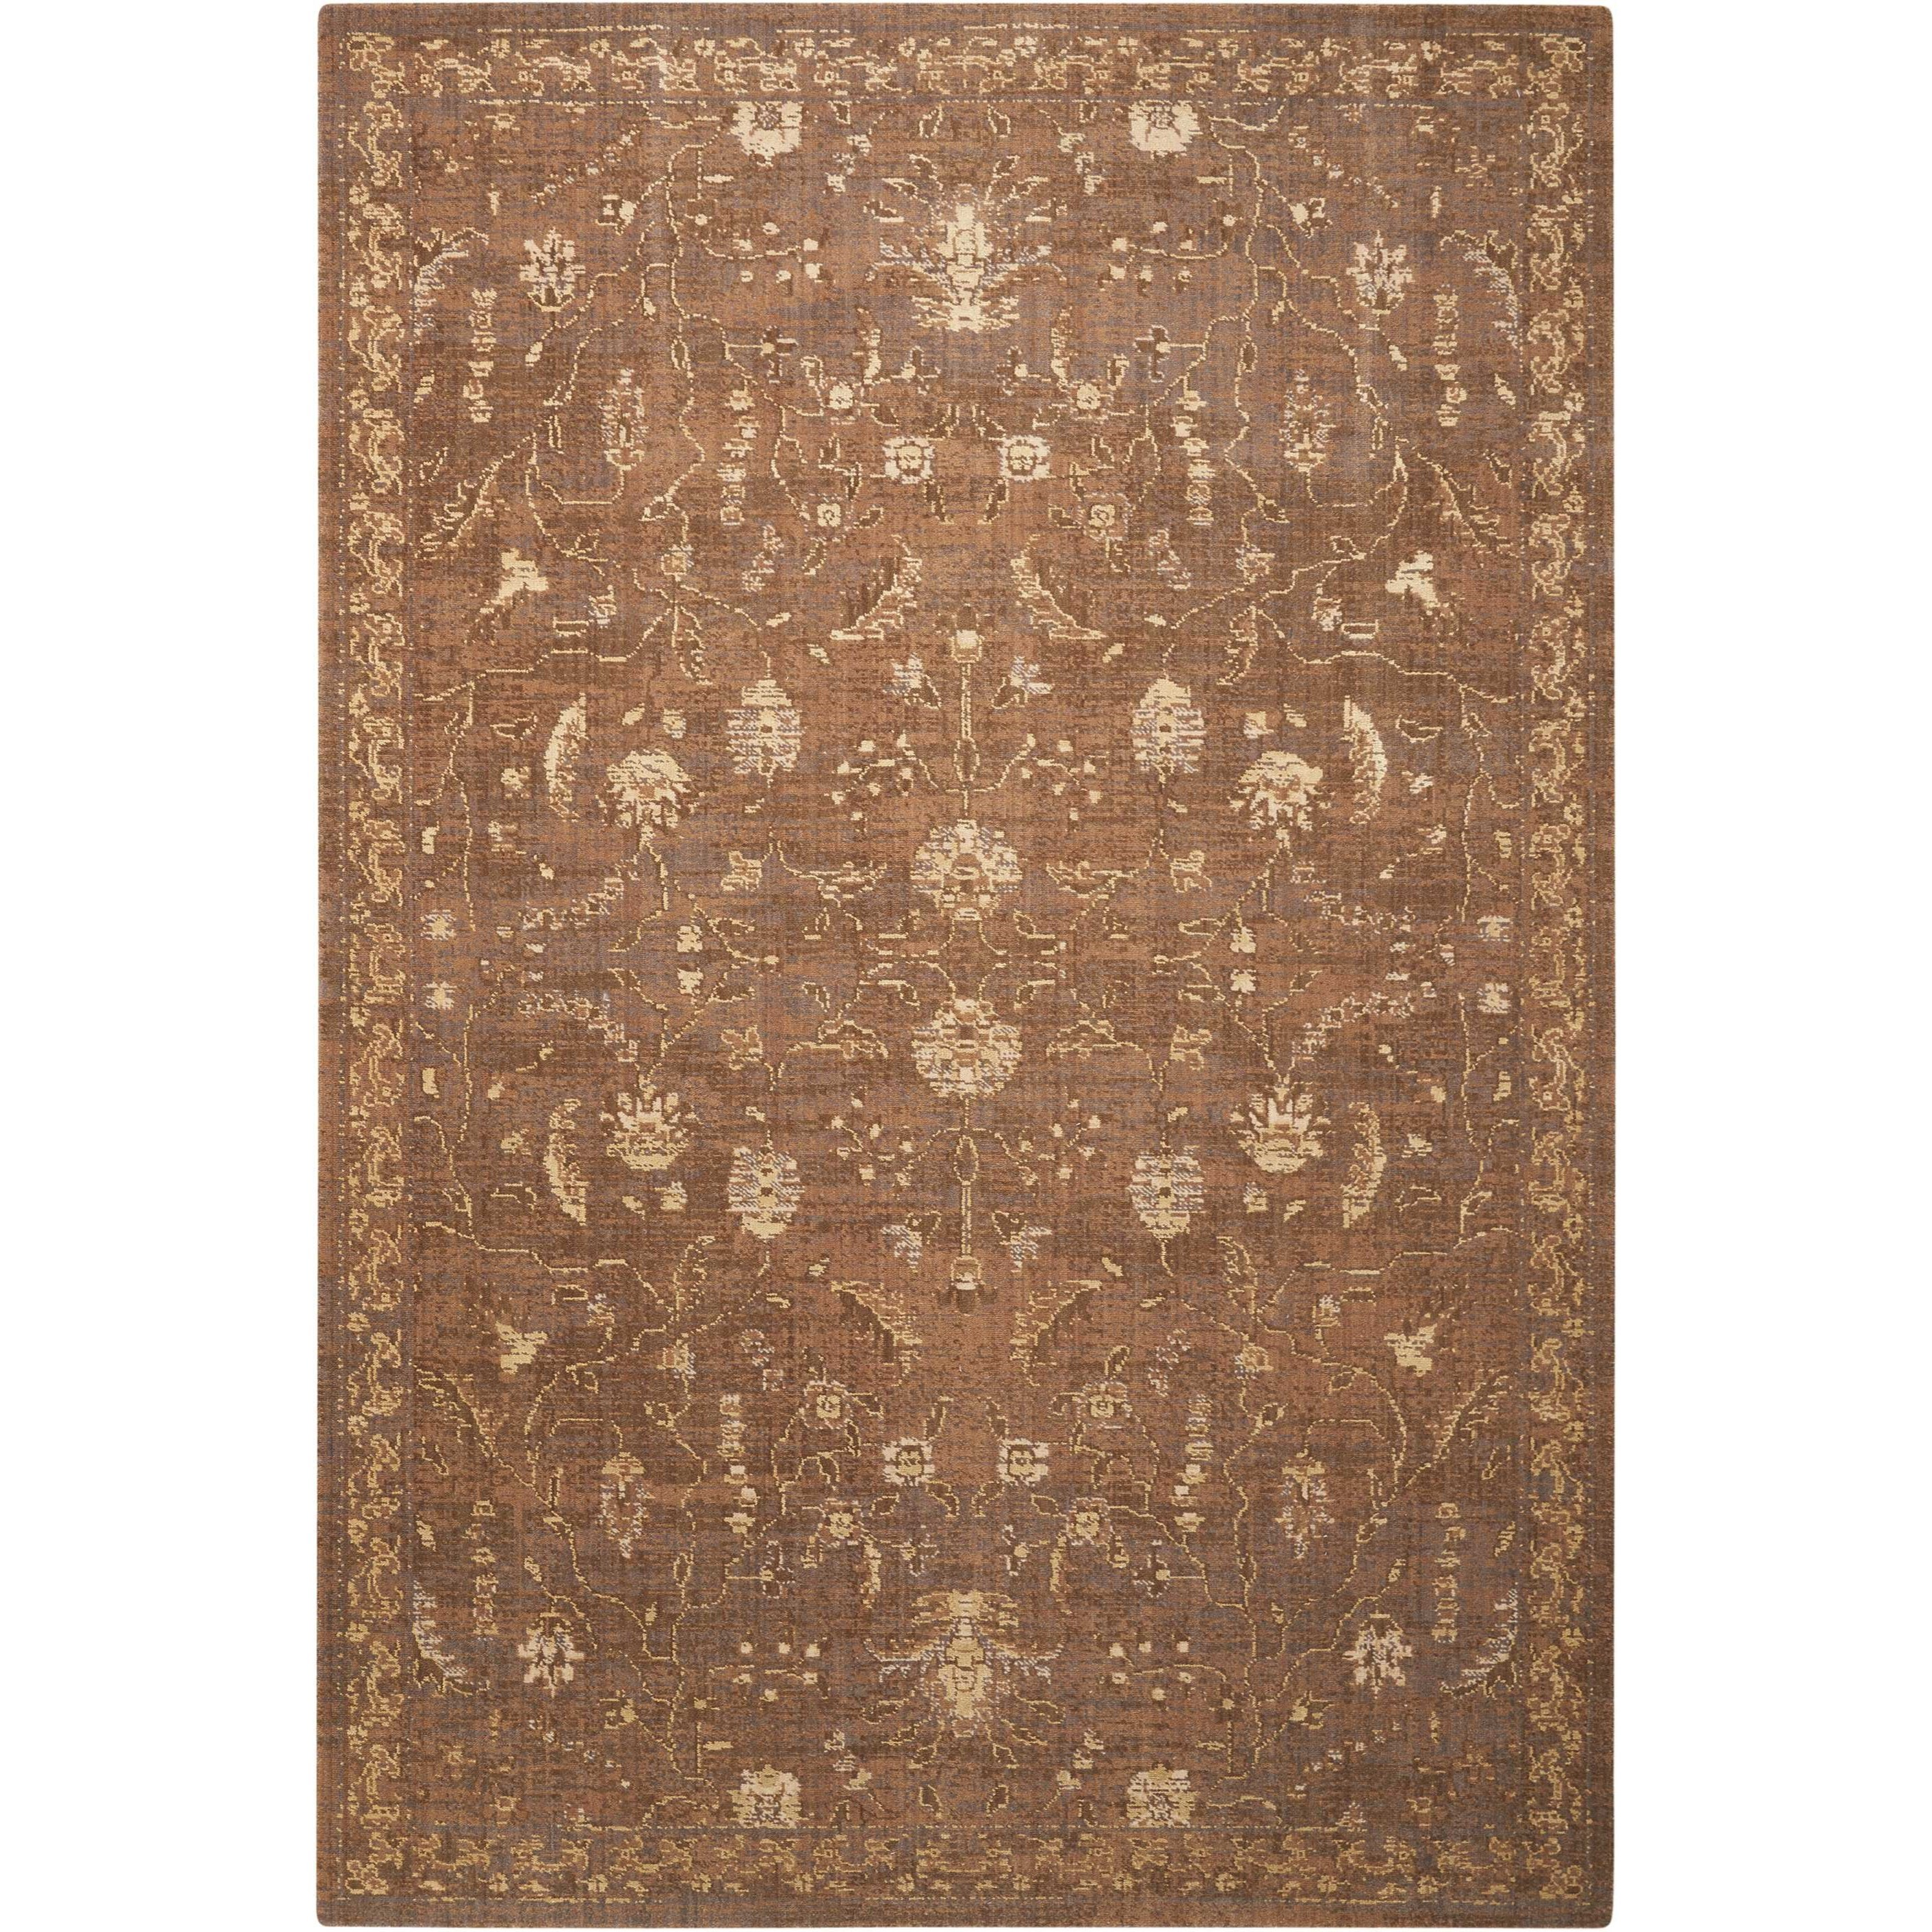 """Silk Elements 5'6"""" x 8' Cocoa Rectangle Rug by Nourison at Home Collections Furniture"""